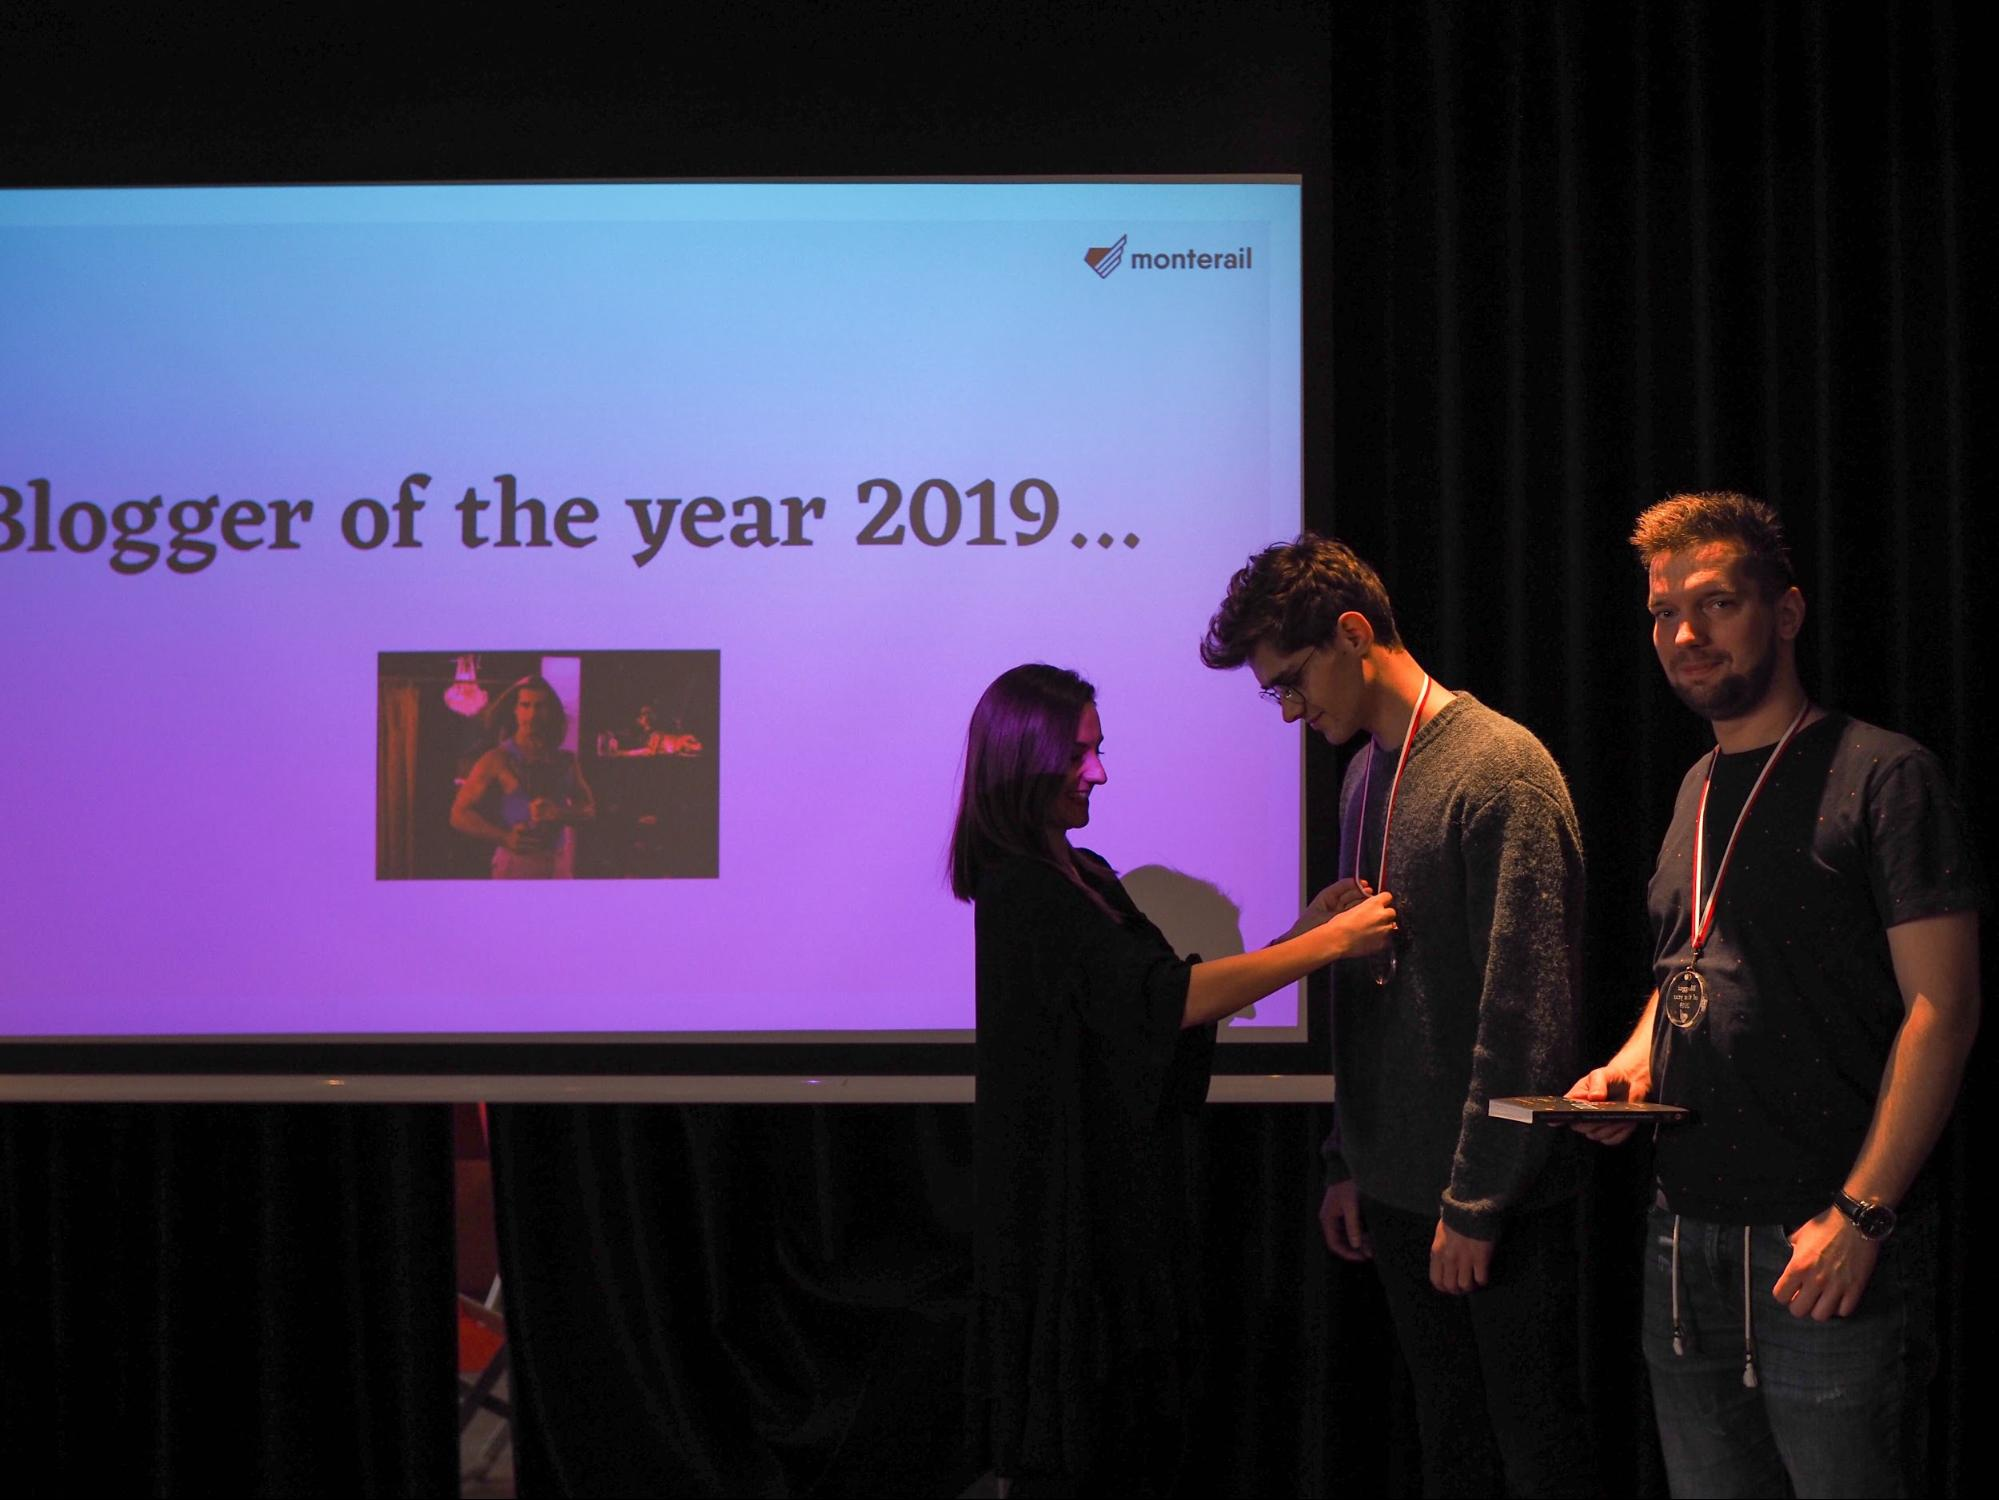 Monterail Blogger of the Year 2019